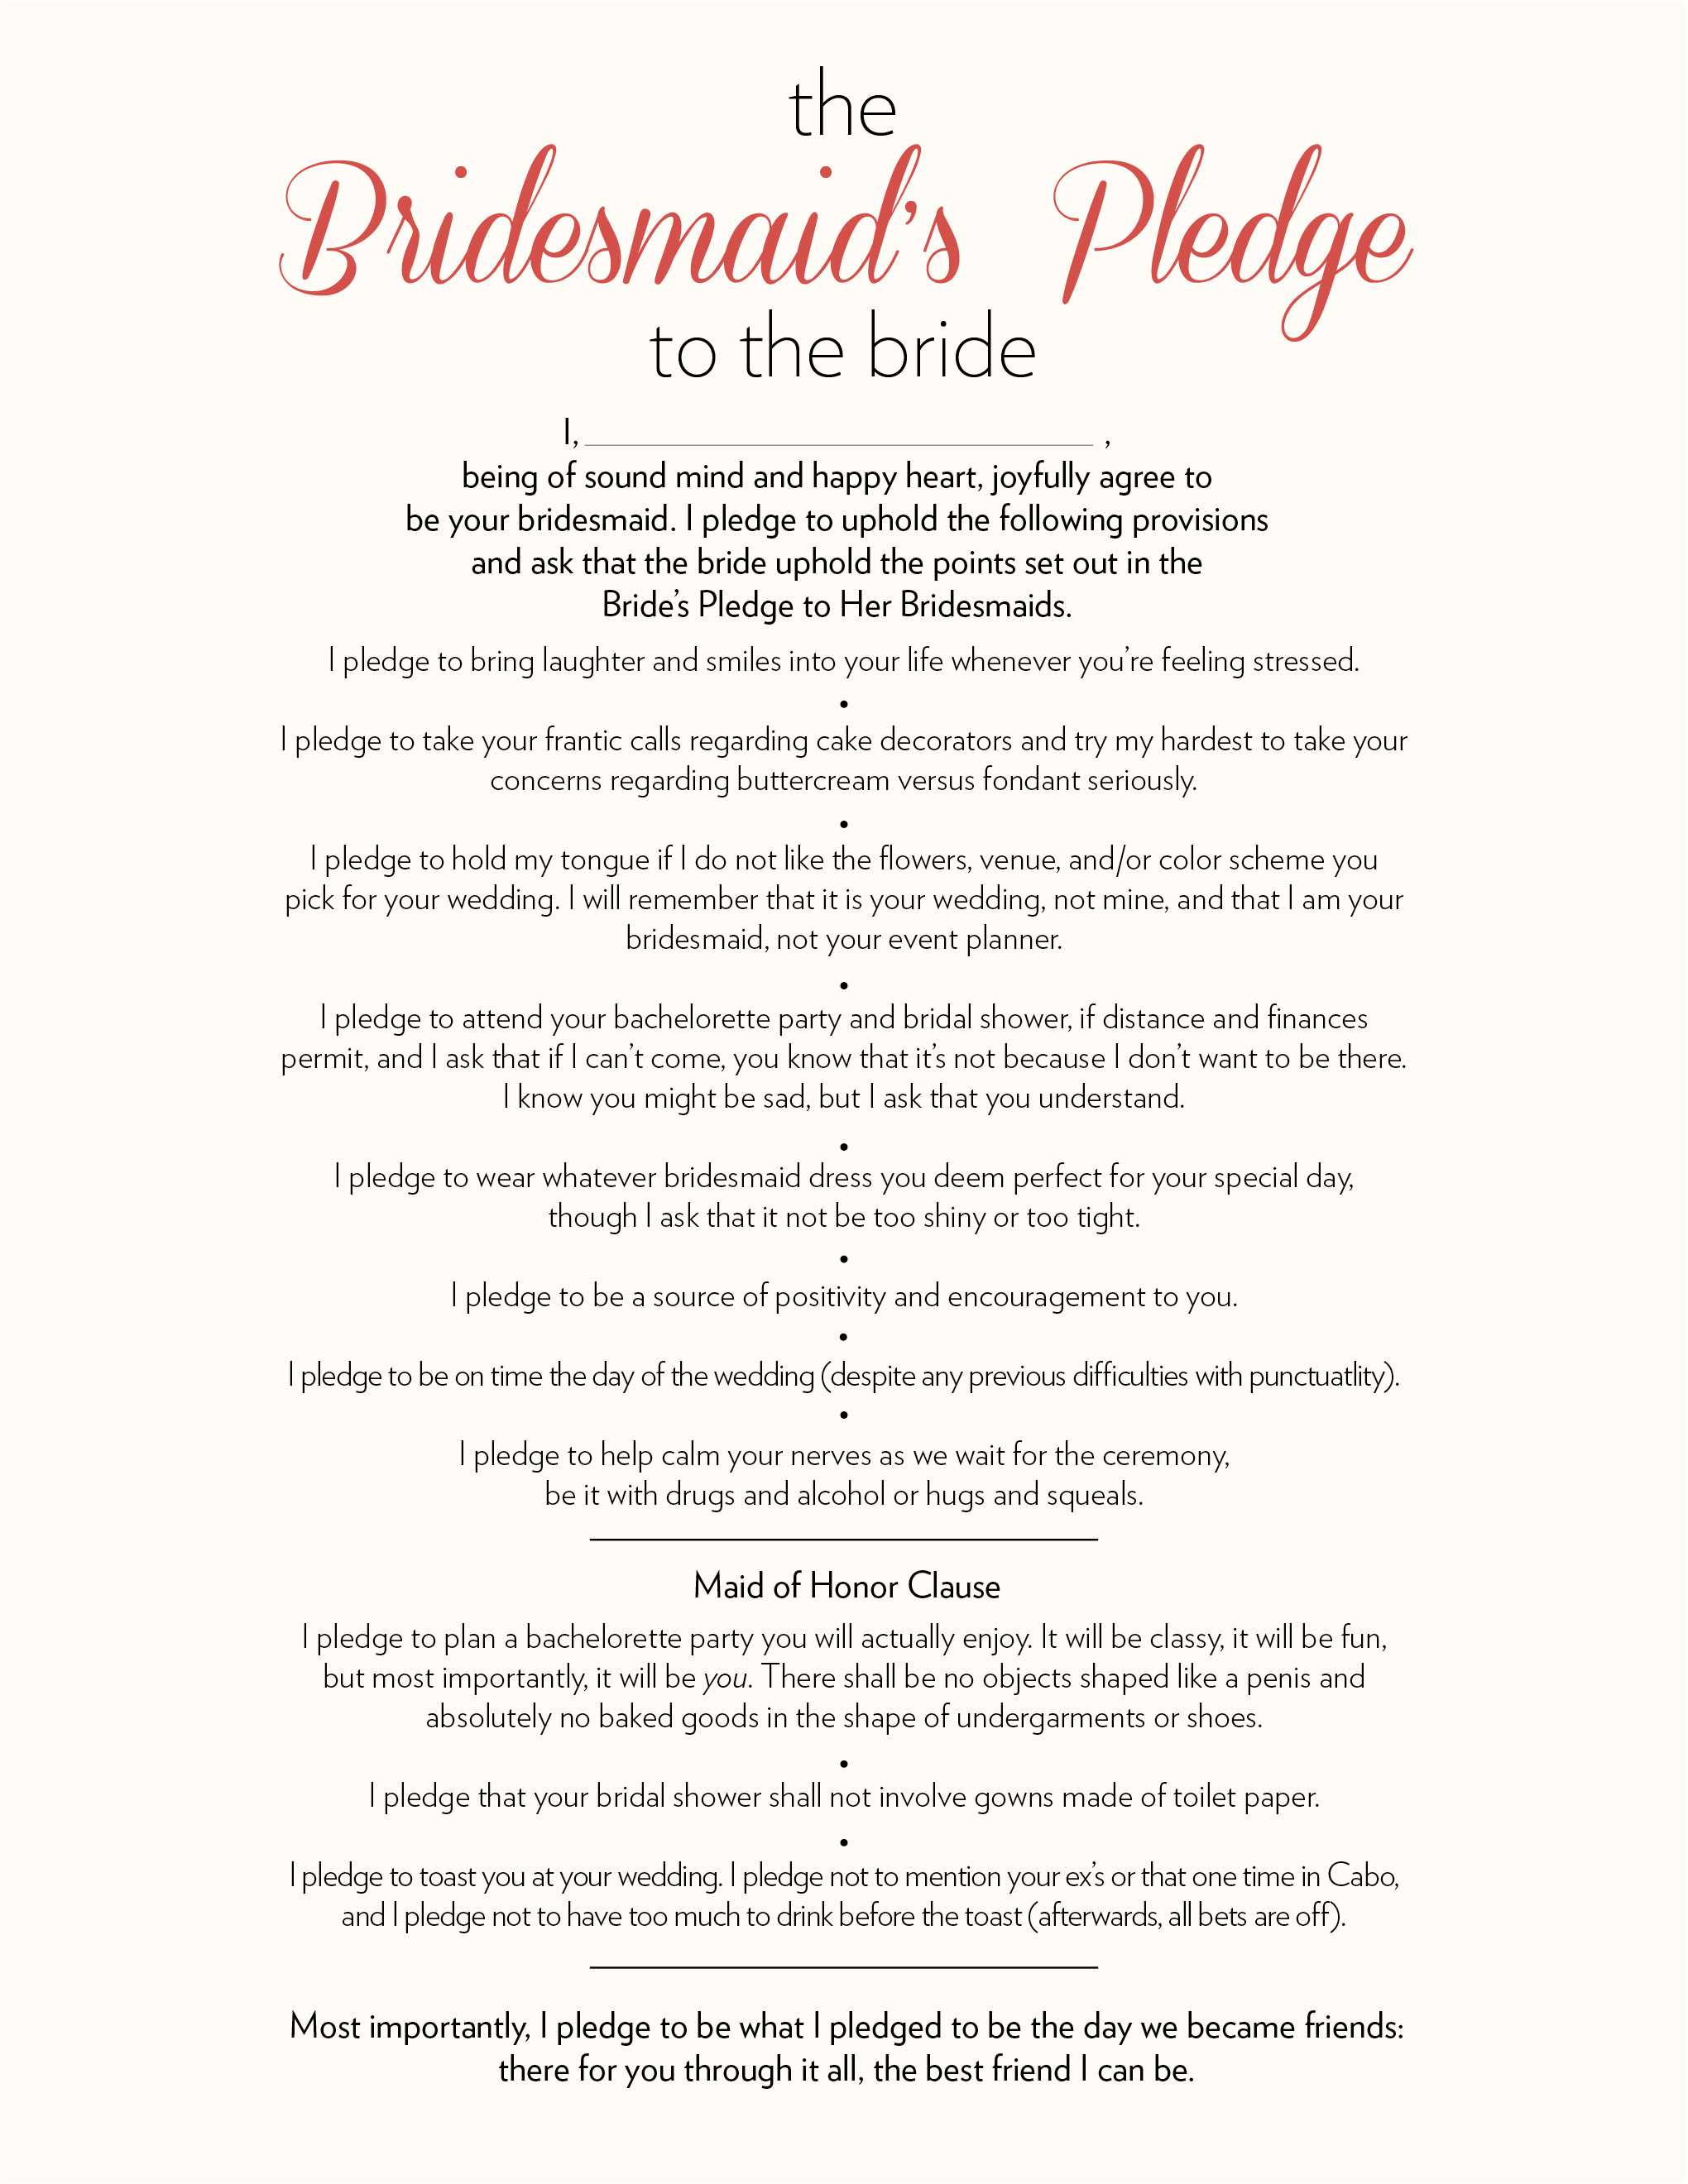 The bridesmaids pledge to the bride ultimate bridesmaid bridesmaids pledge to the bride m4hsunfo